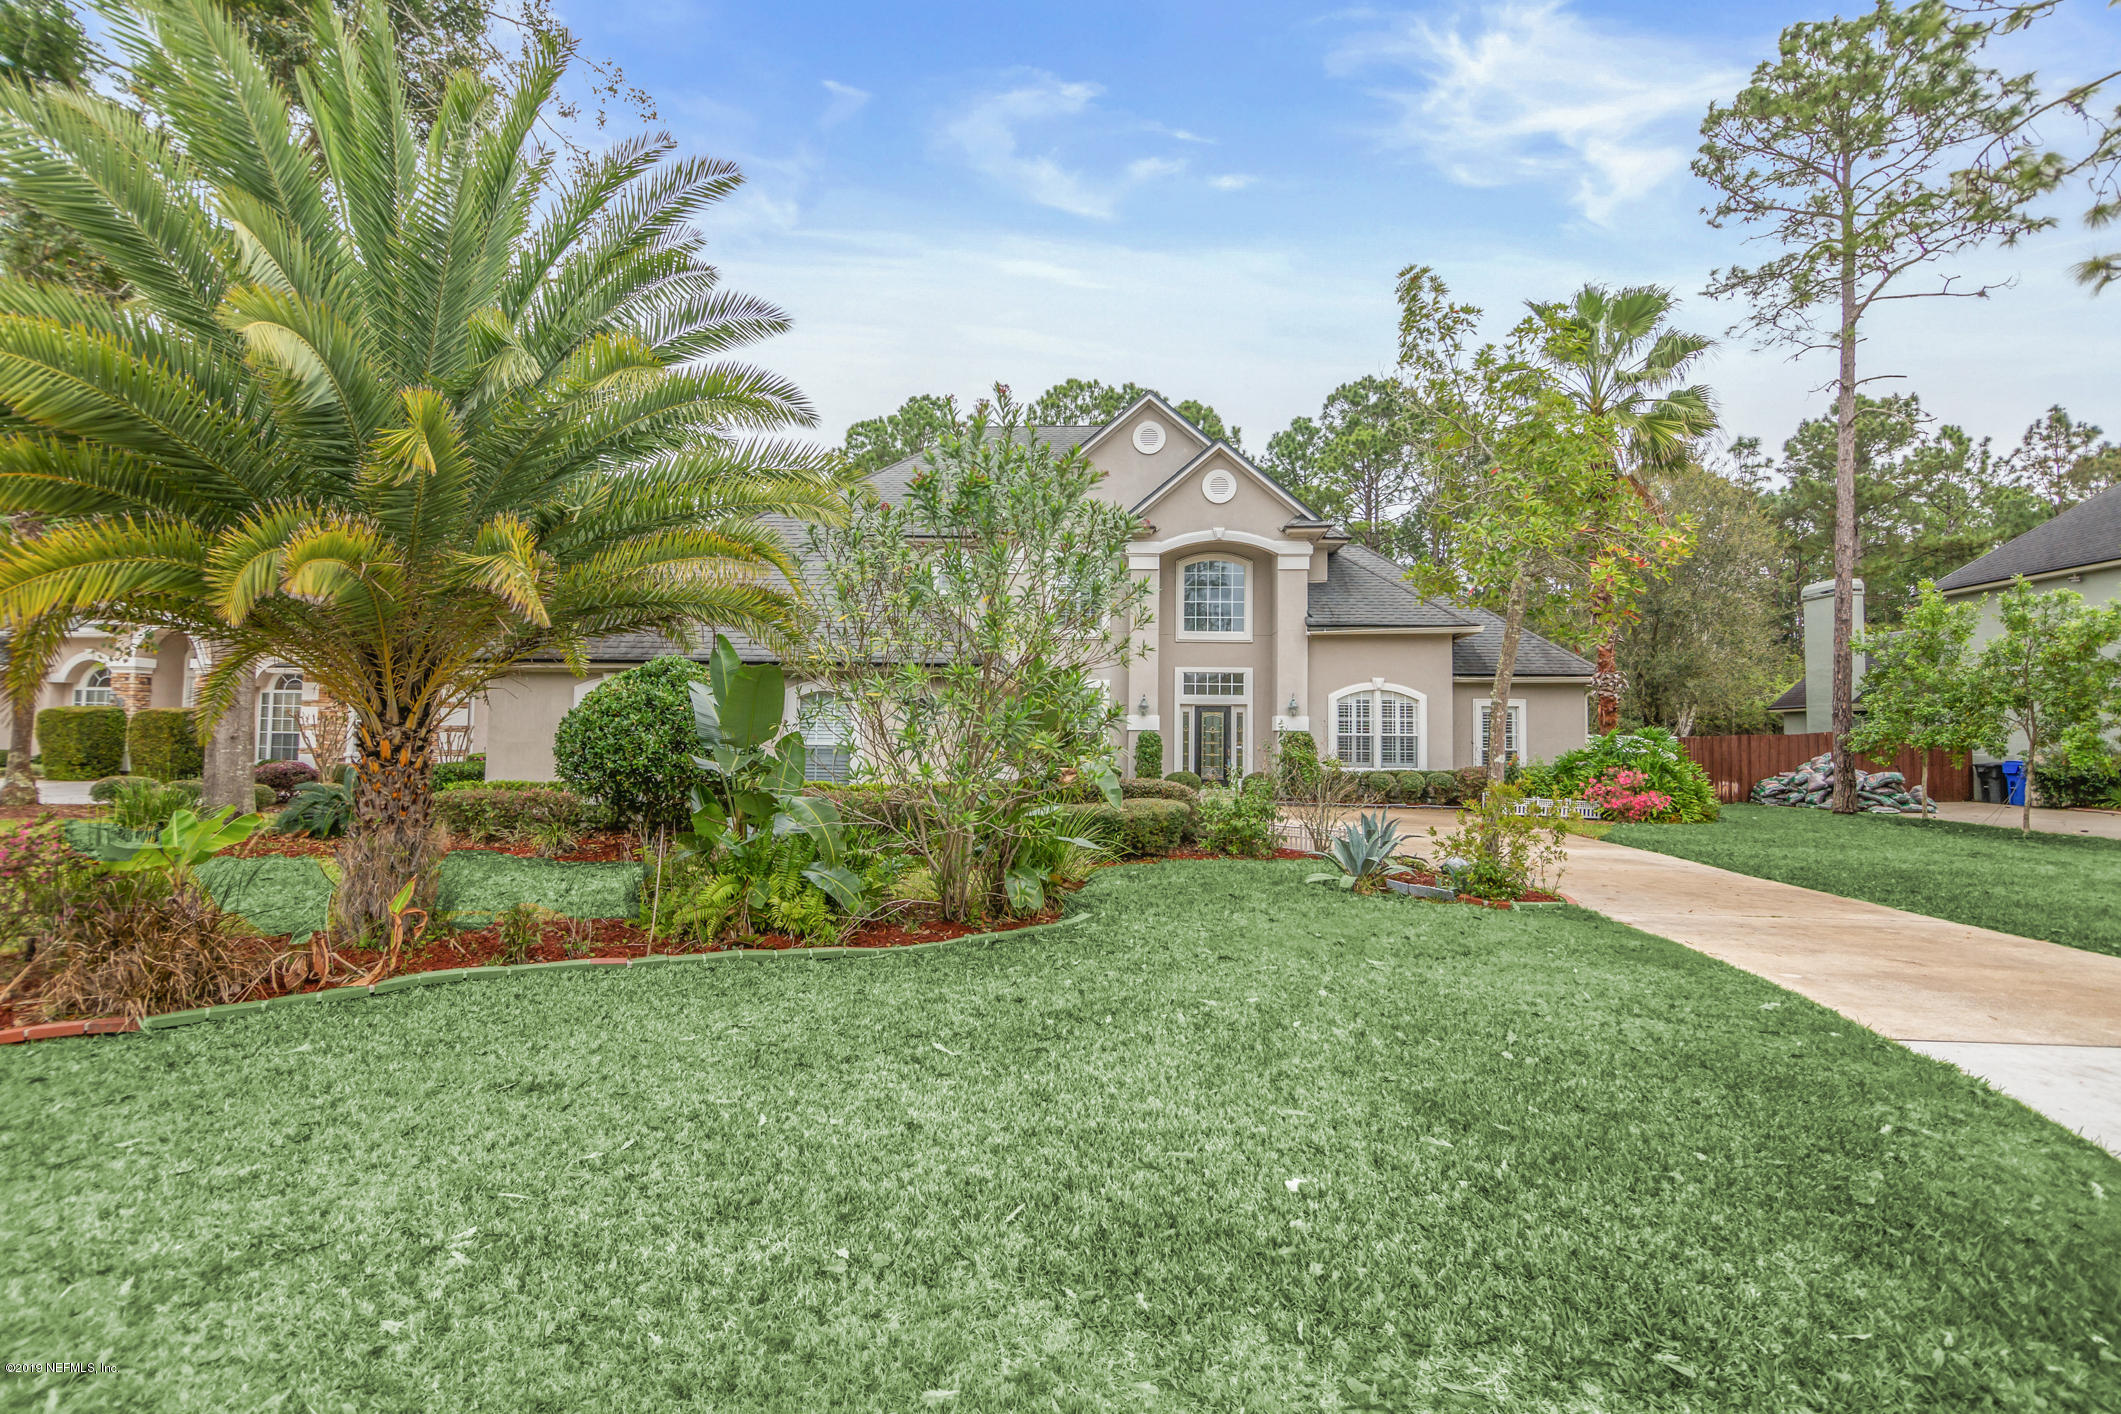 1248 N BURGANDY TRL, Julington Creek in ST. JOHNS County, FL 32259 Home for Sale